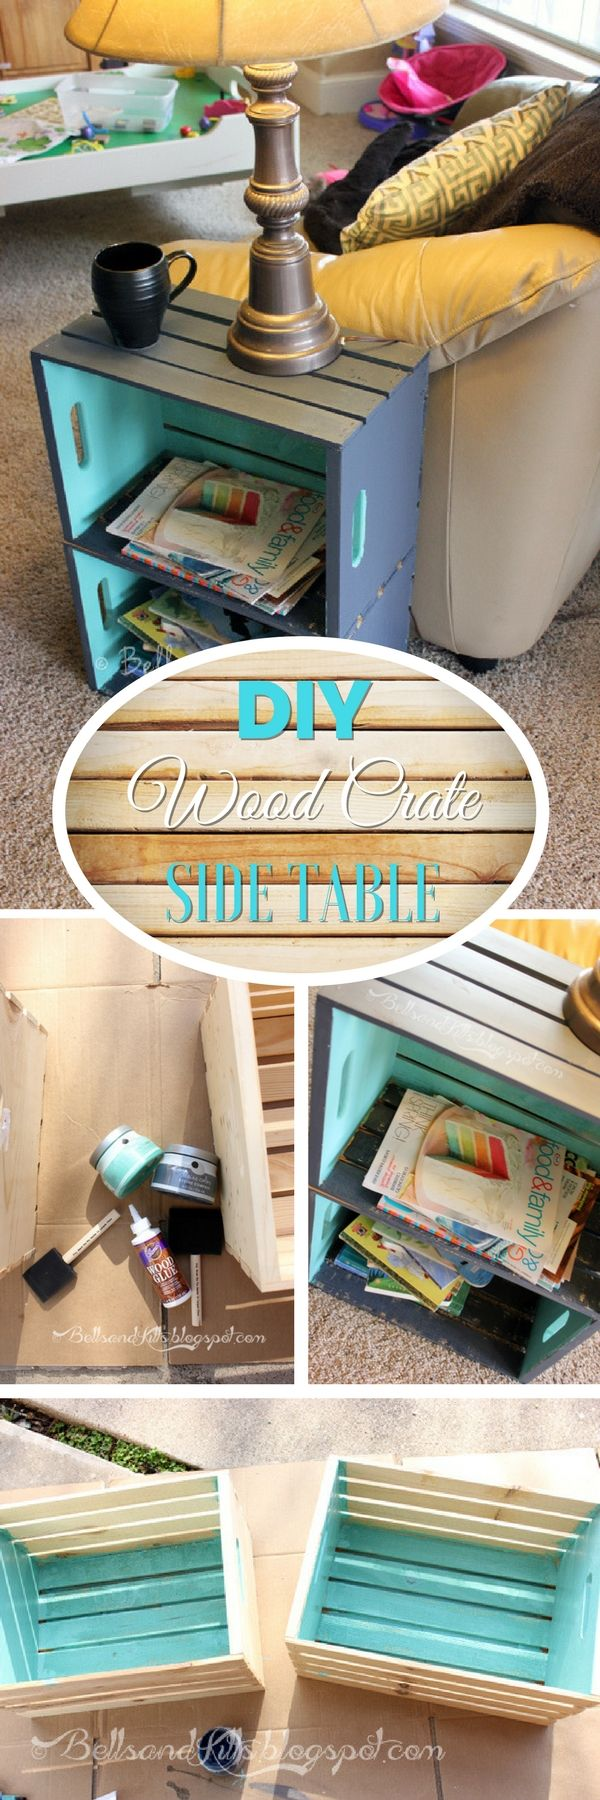 Check out how to build a simple DIY side table form wood crates @istandarddesign